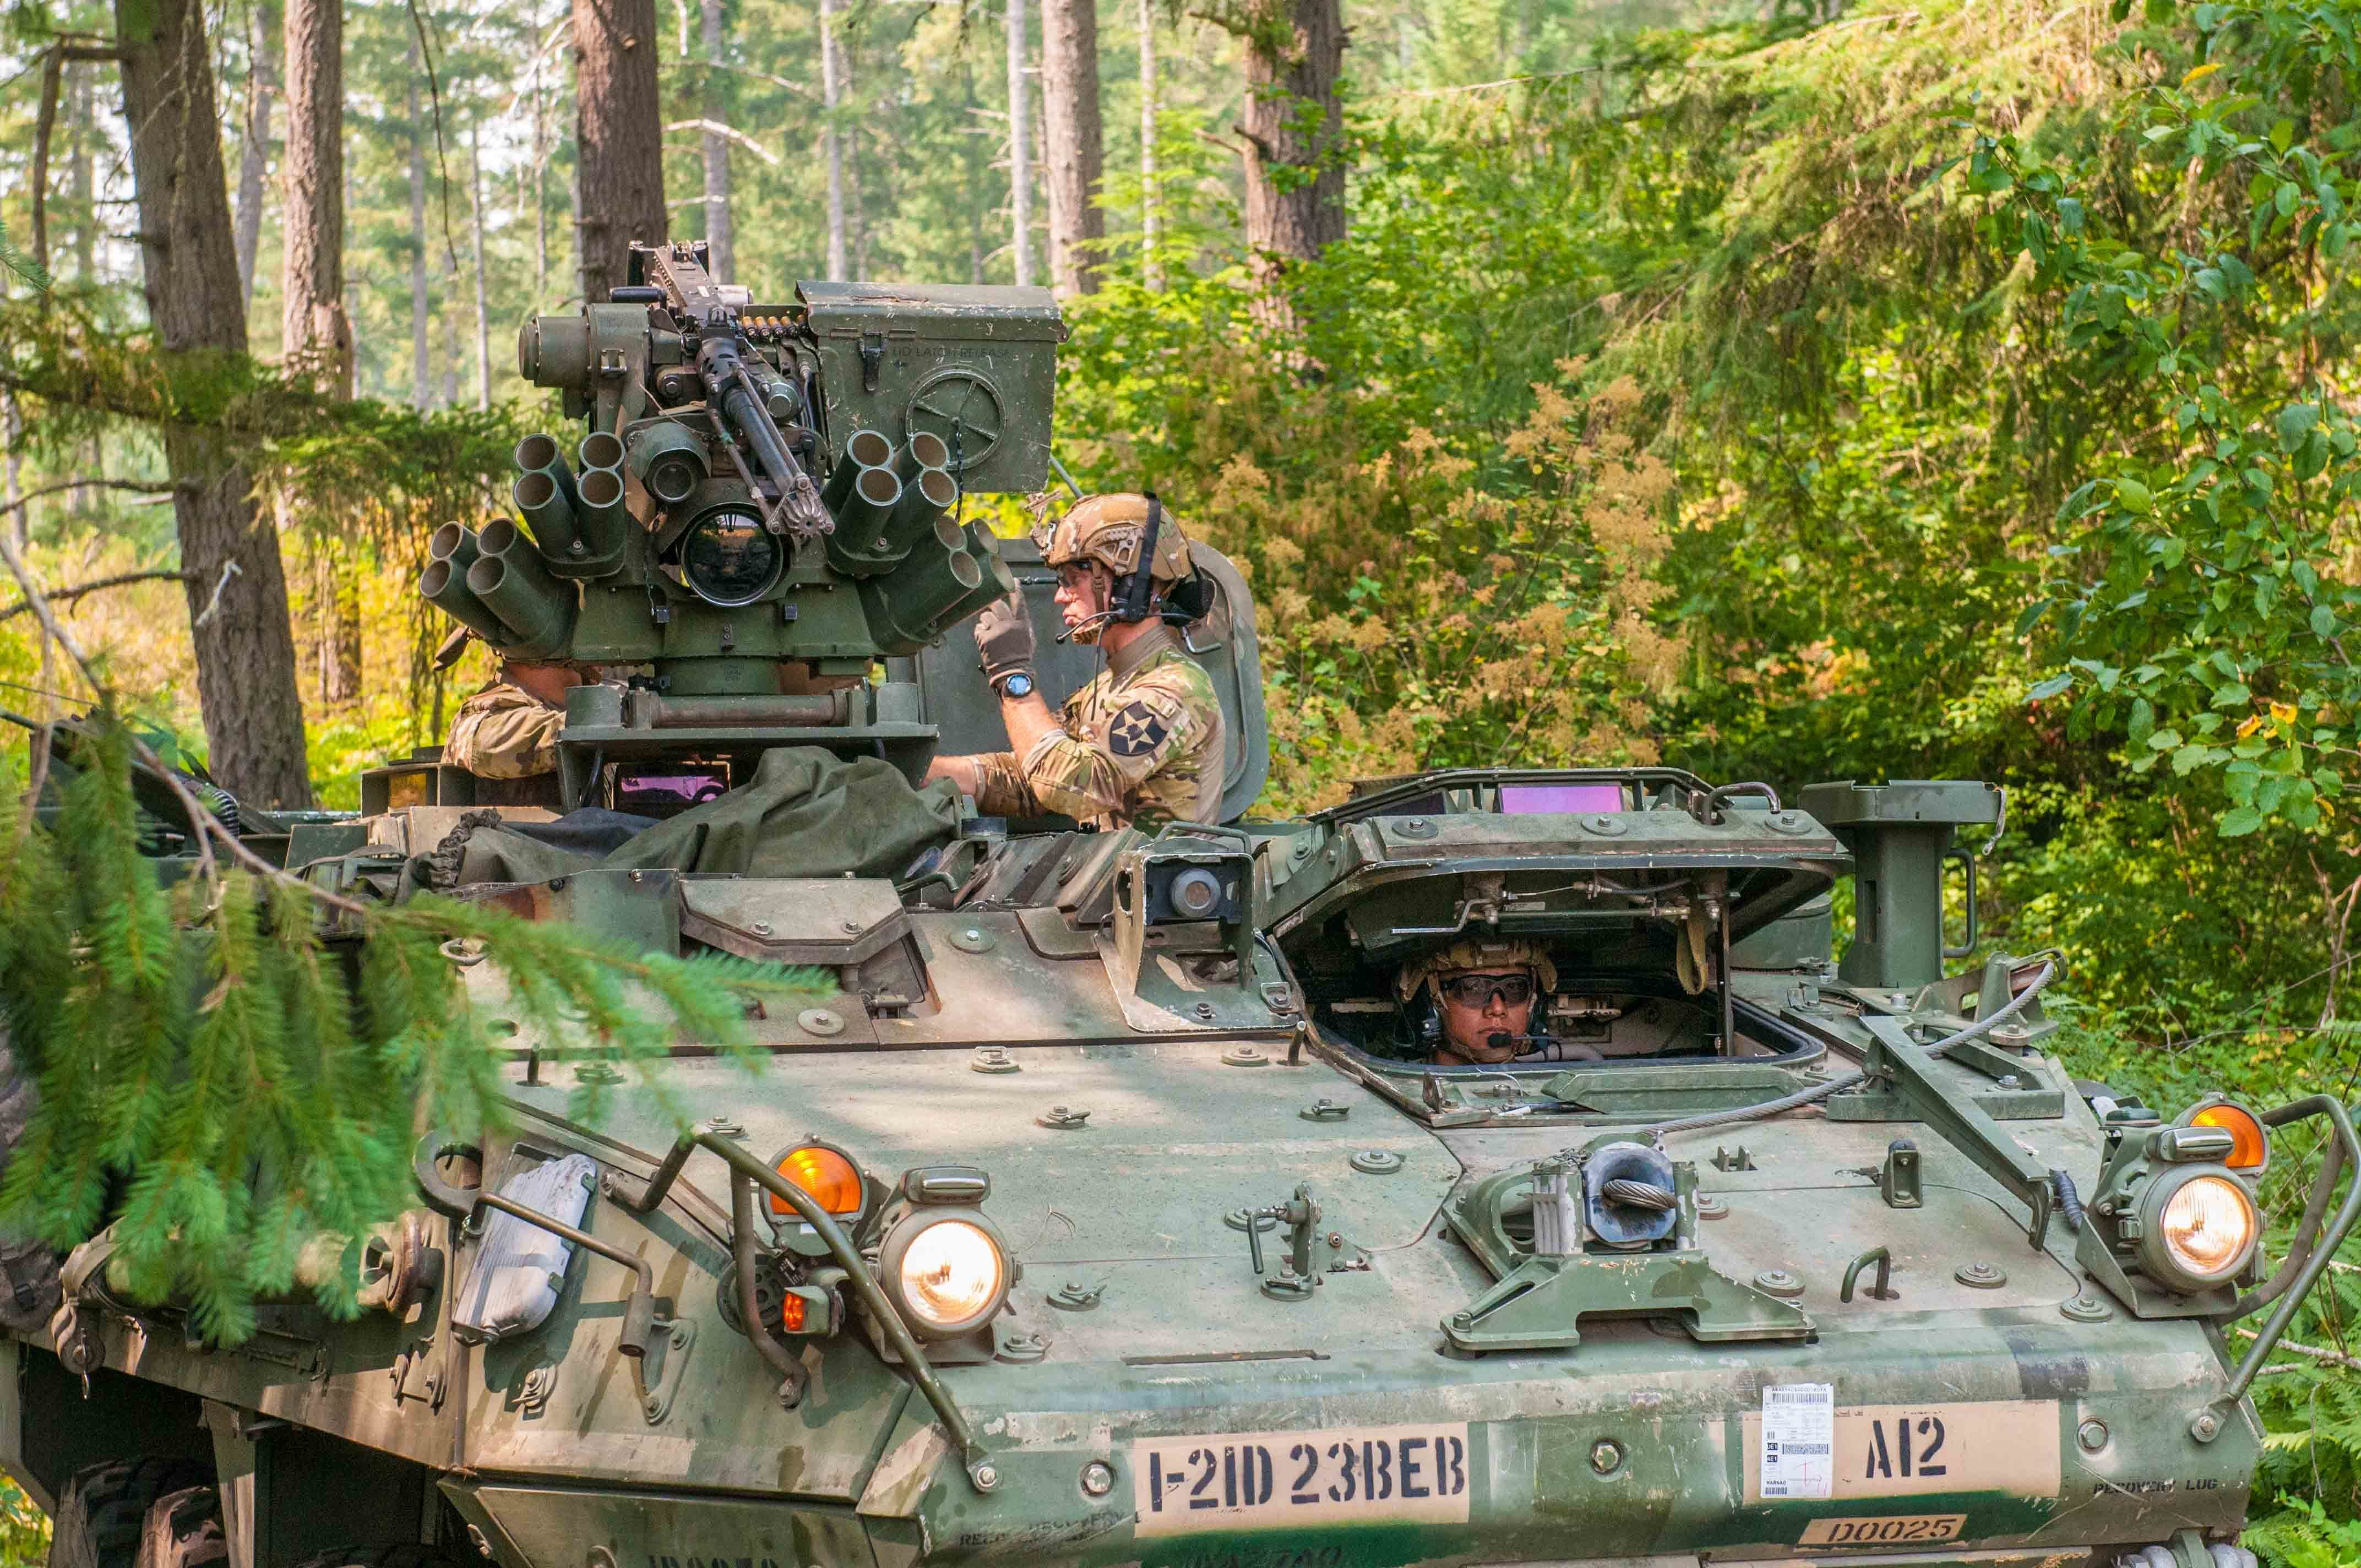 Soldiers with 23rd Brigade Engineer Battalion, 1-2 Stryker Brigade Combat team, 7th Infantry Division prepare a M1126 Stryker for a mission on Joint Base Lewis-McChord, August 8, 2017 during an operational test of the Integrated Head Protection System (IHPS) and Tactical Communication and Protective System Lite (TCAPS-L) hearing protection. Soldiers put the IHPS and TCAPS-L to the test while conducting training and gave feedback to data collectors about the equipment's performance. (U.S. Army photo by Sgt. Youtoy Martin, 5th Mobile Public Affairs Detachment)